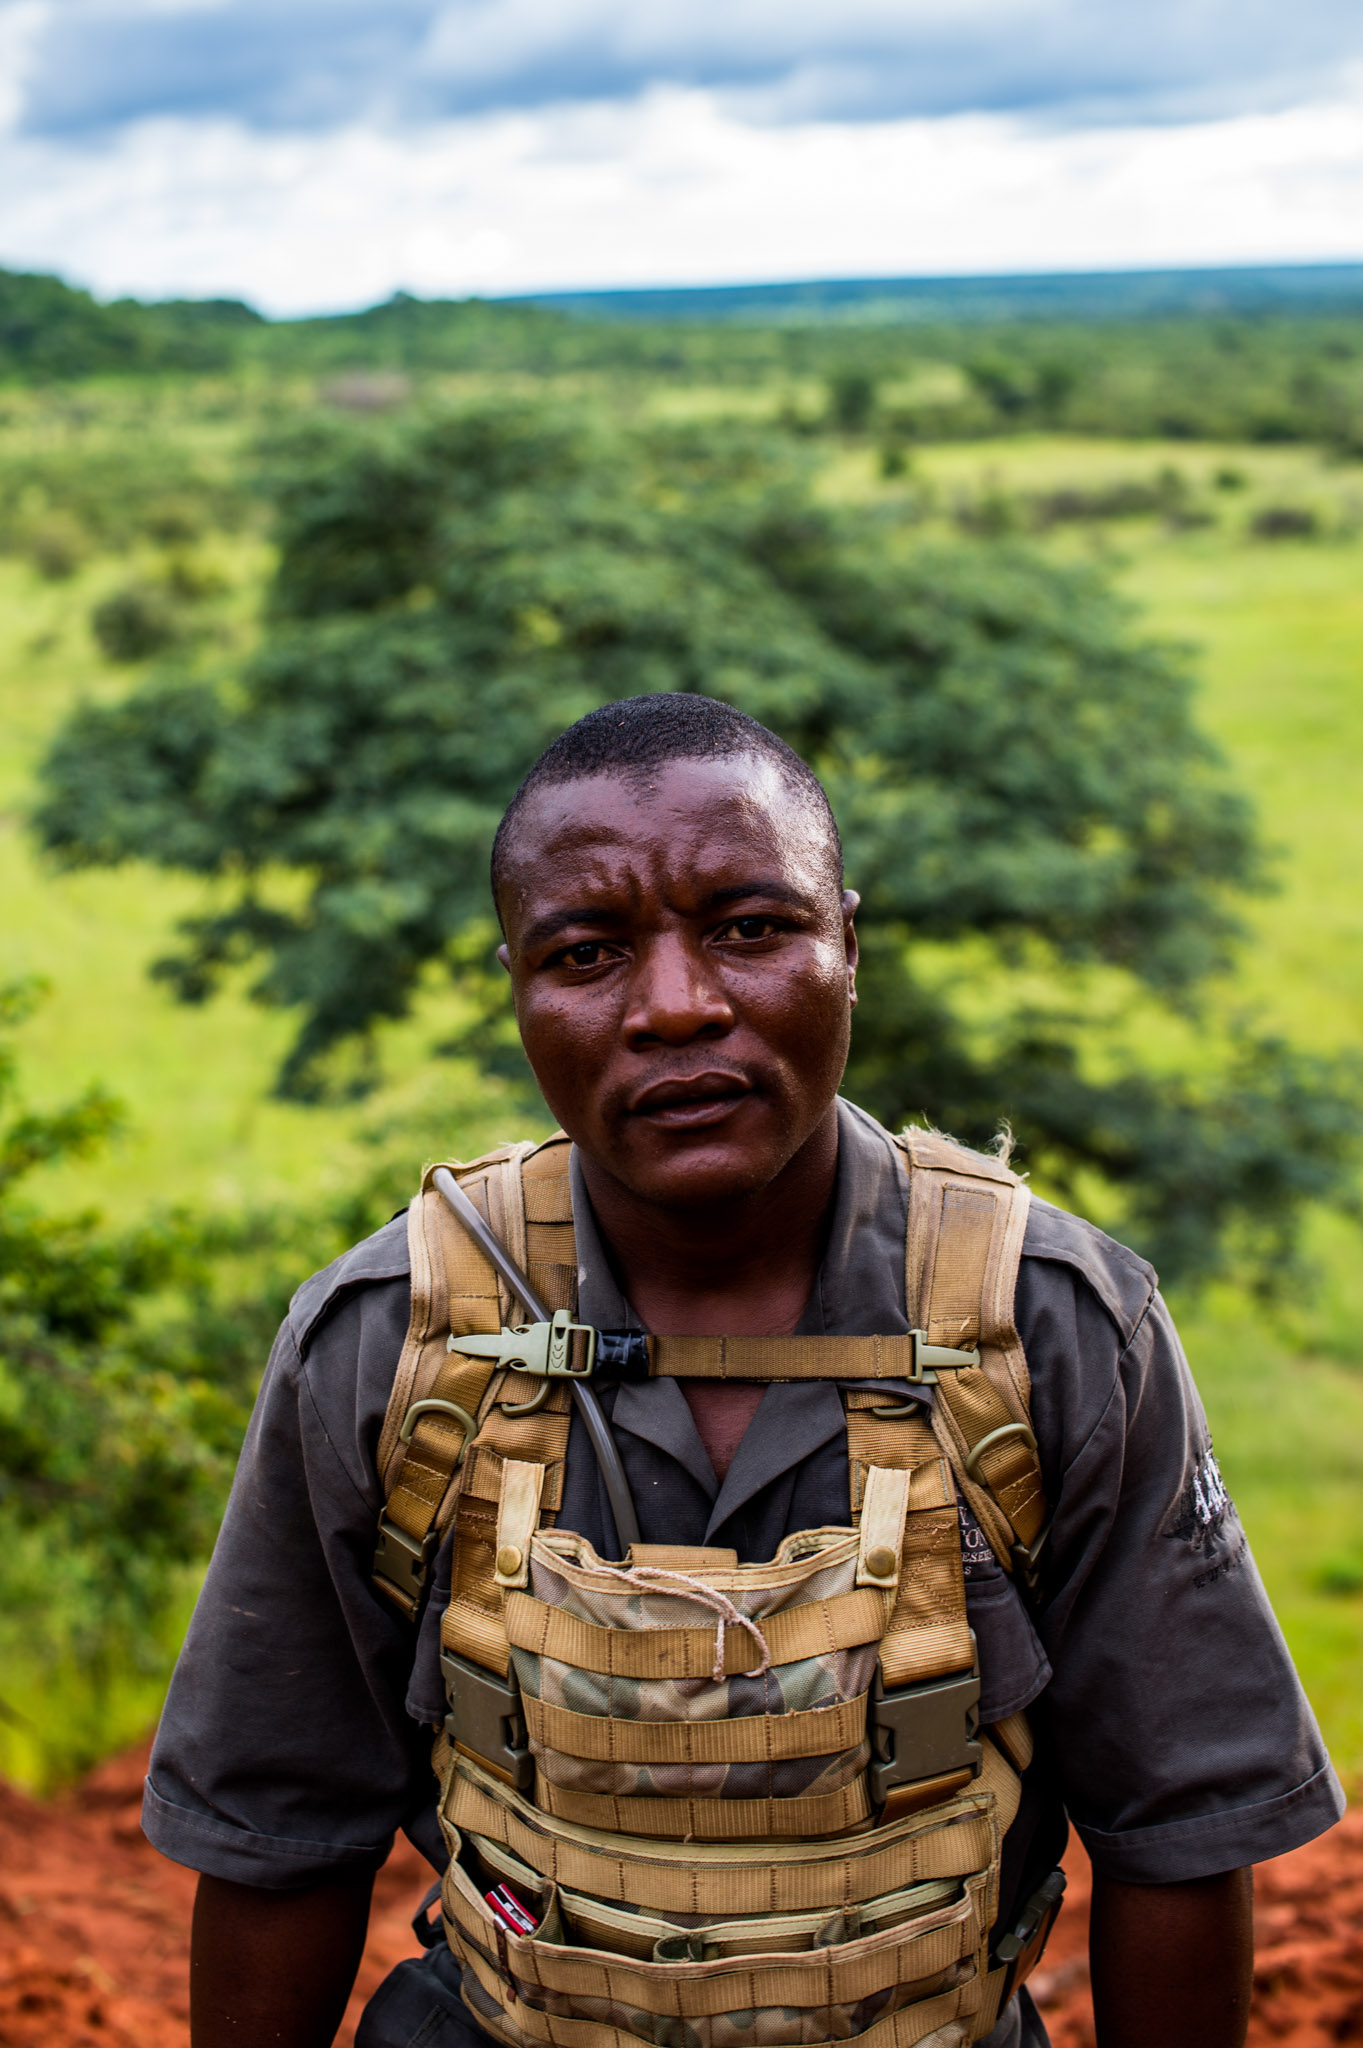 IAPF ranger Michael Dube—Photograph by Michael Hathorn, Ginkgo Agency